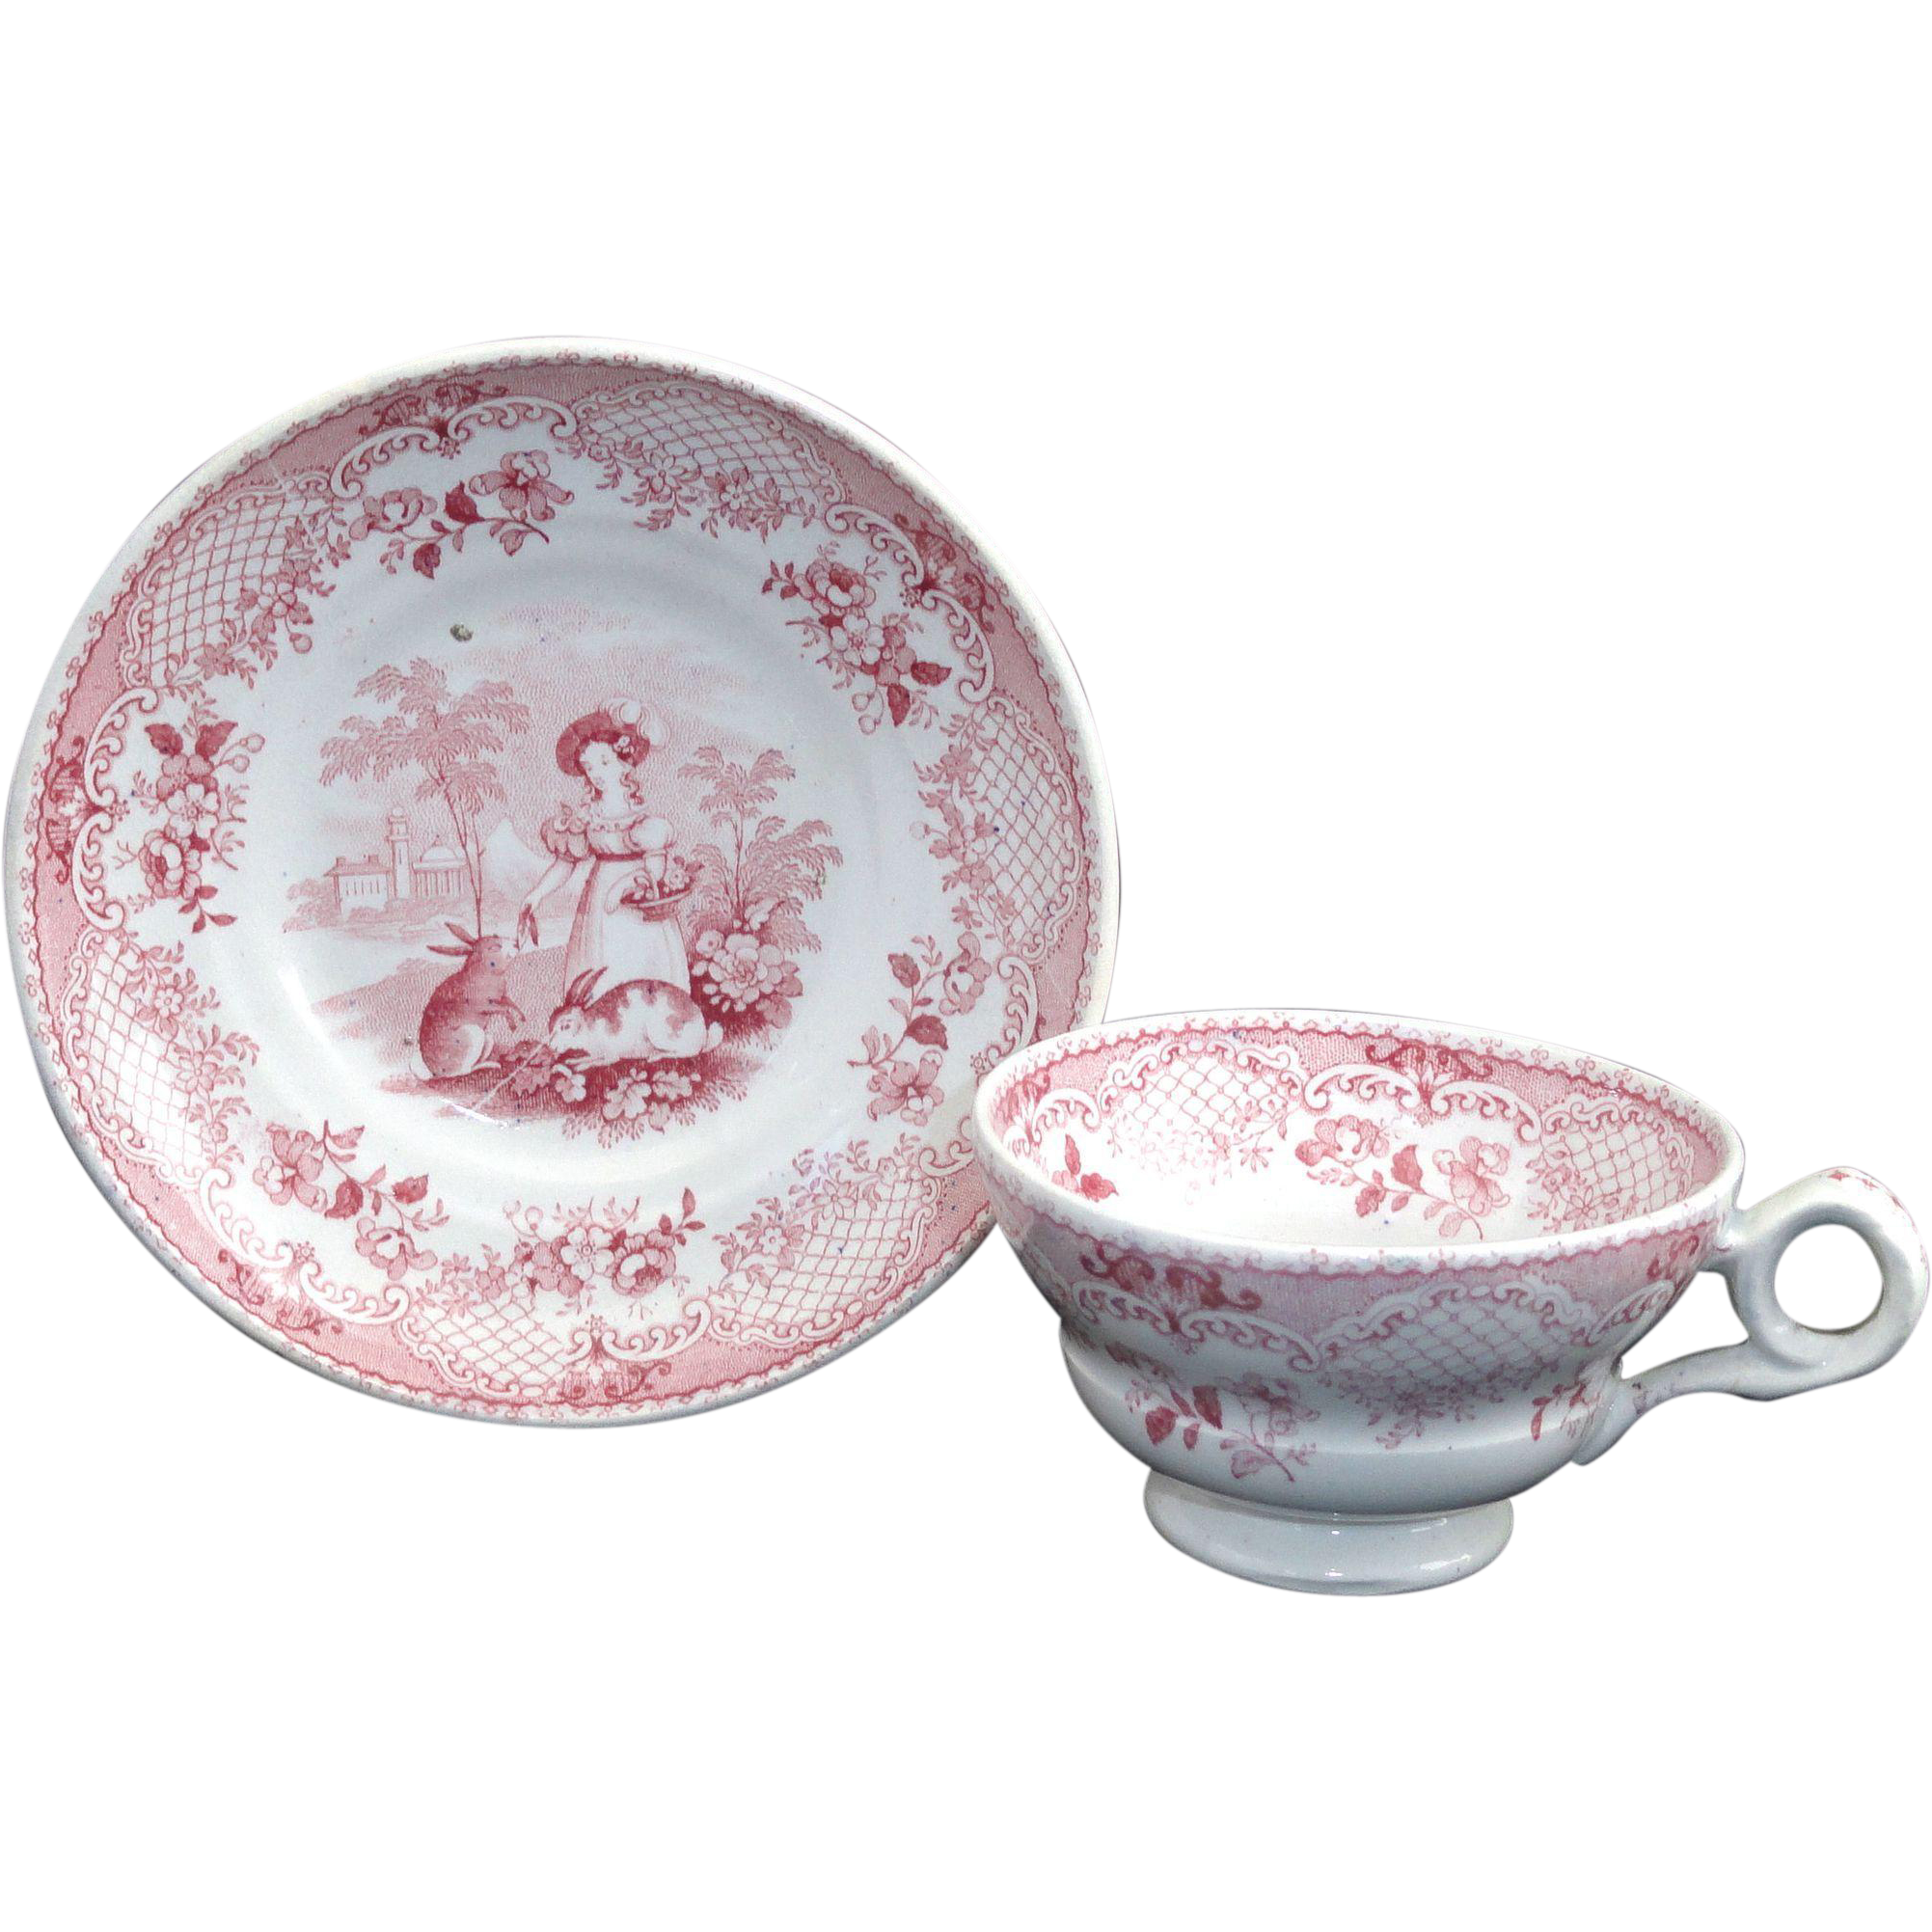 Miniature Pearlware Transferware  Childs Cup & Saucer Set  JUVENILE ~ RABBITS  Wood & Brownfield  Staffordshire c1840